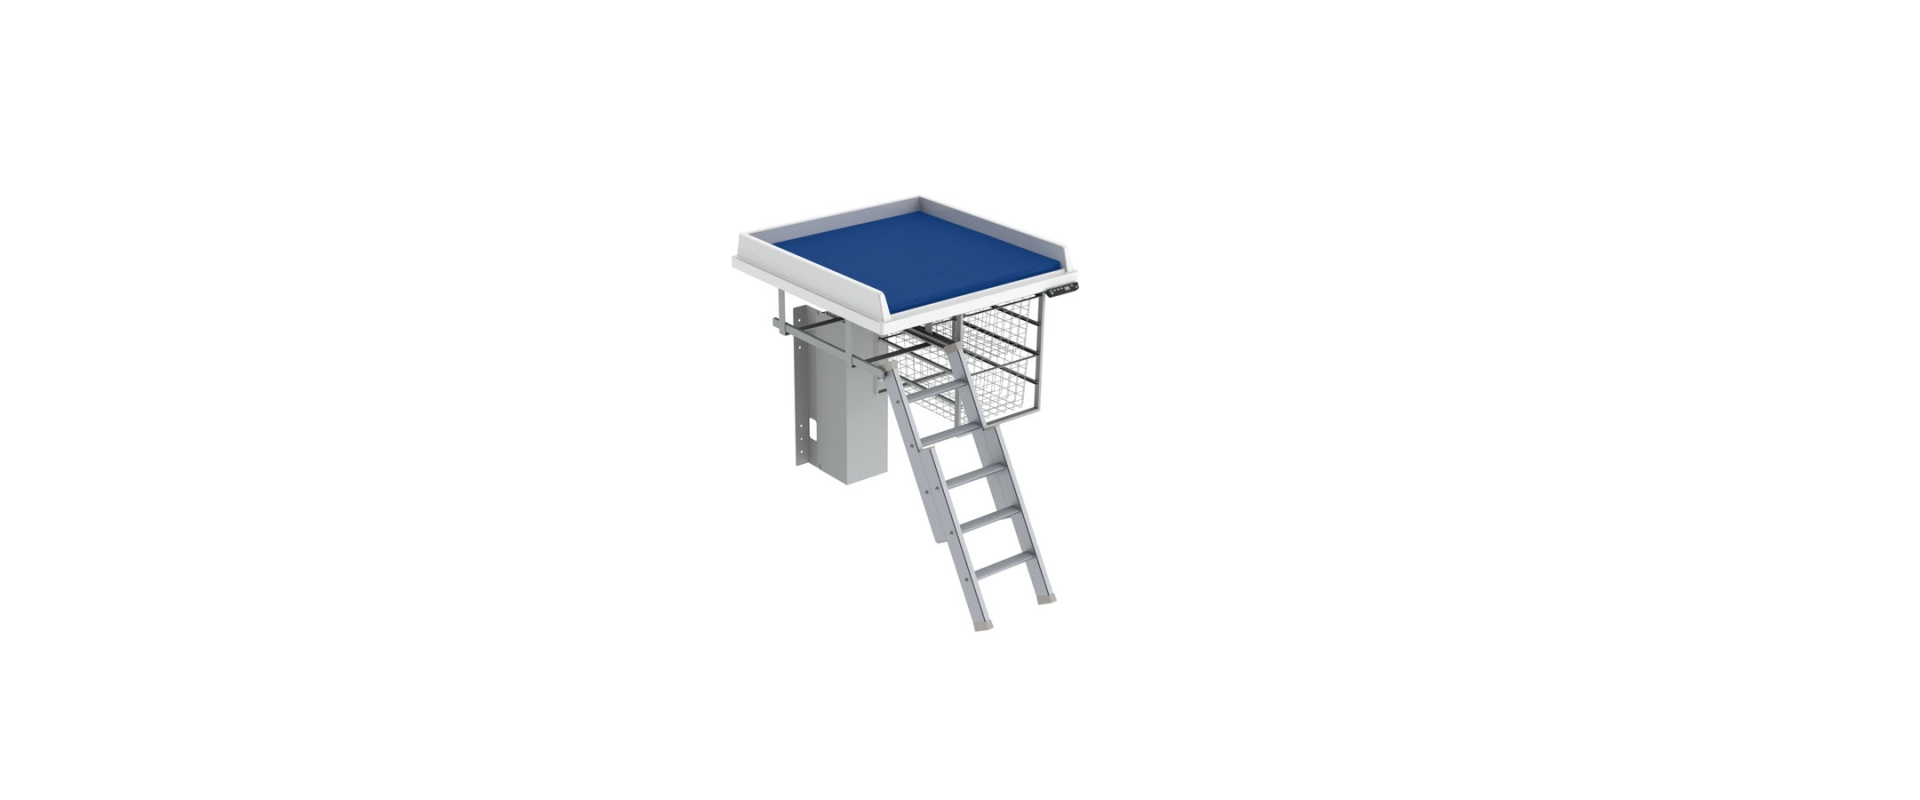 <b>Baby changing table 335 - Border height 5.0 cm</b>